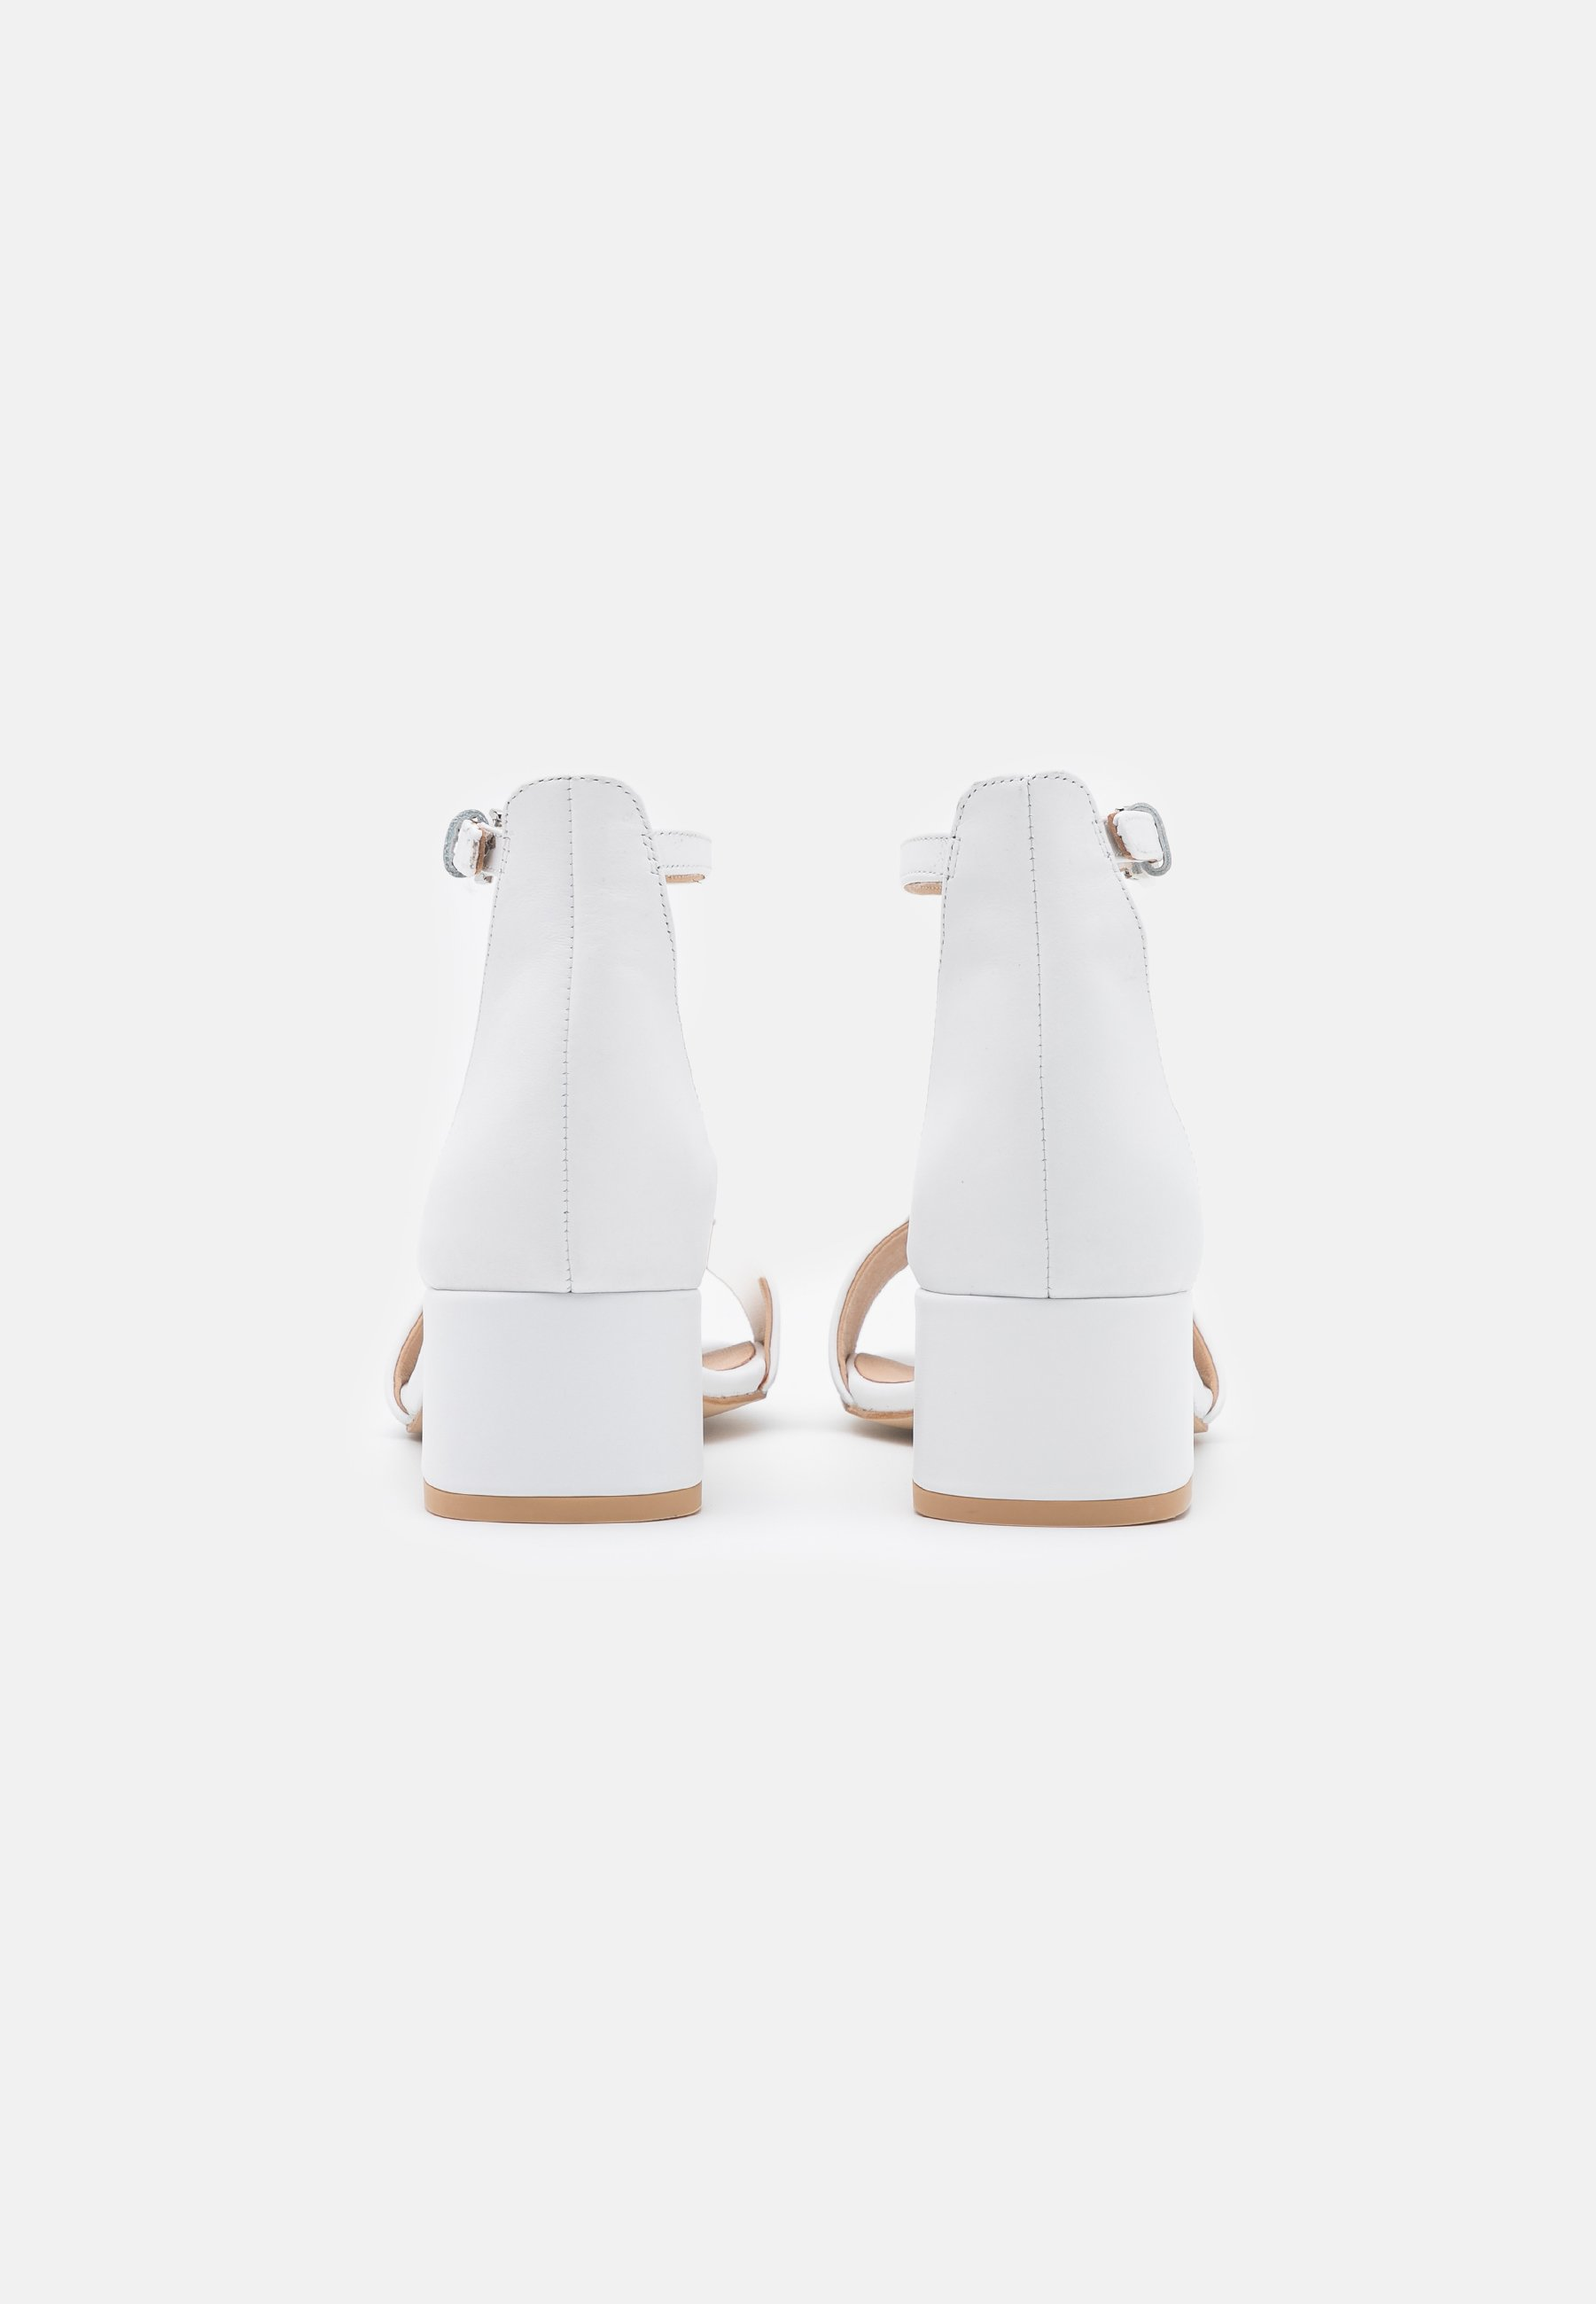 Best Authentic Wholesale Quality Women's Shoes Anna Field LEATHER Sandals white XrUnyfSfY xwjGelLbO